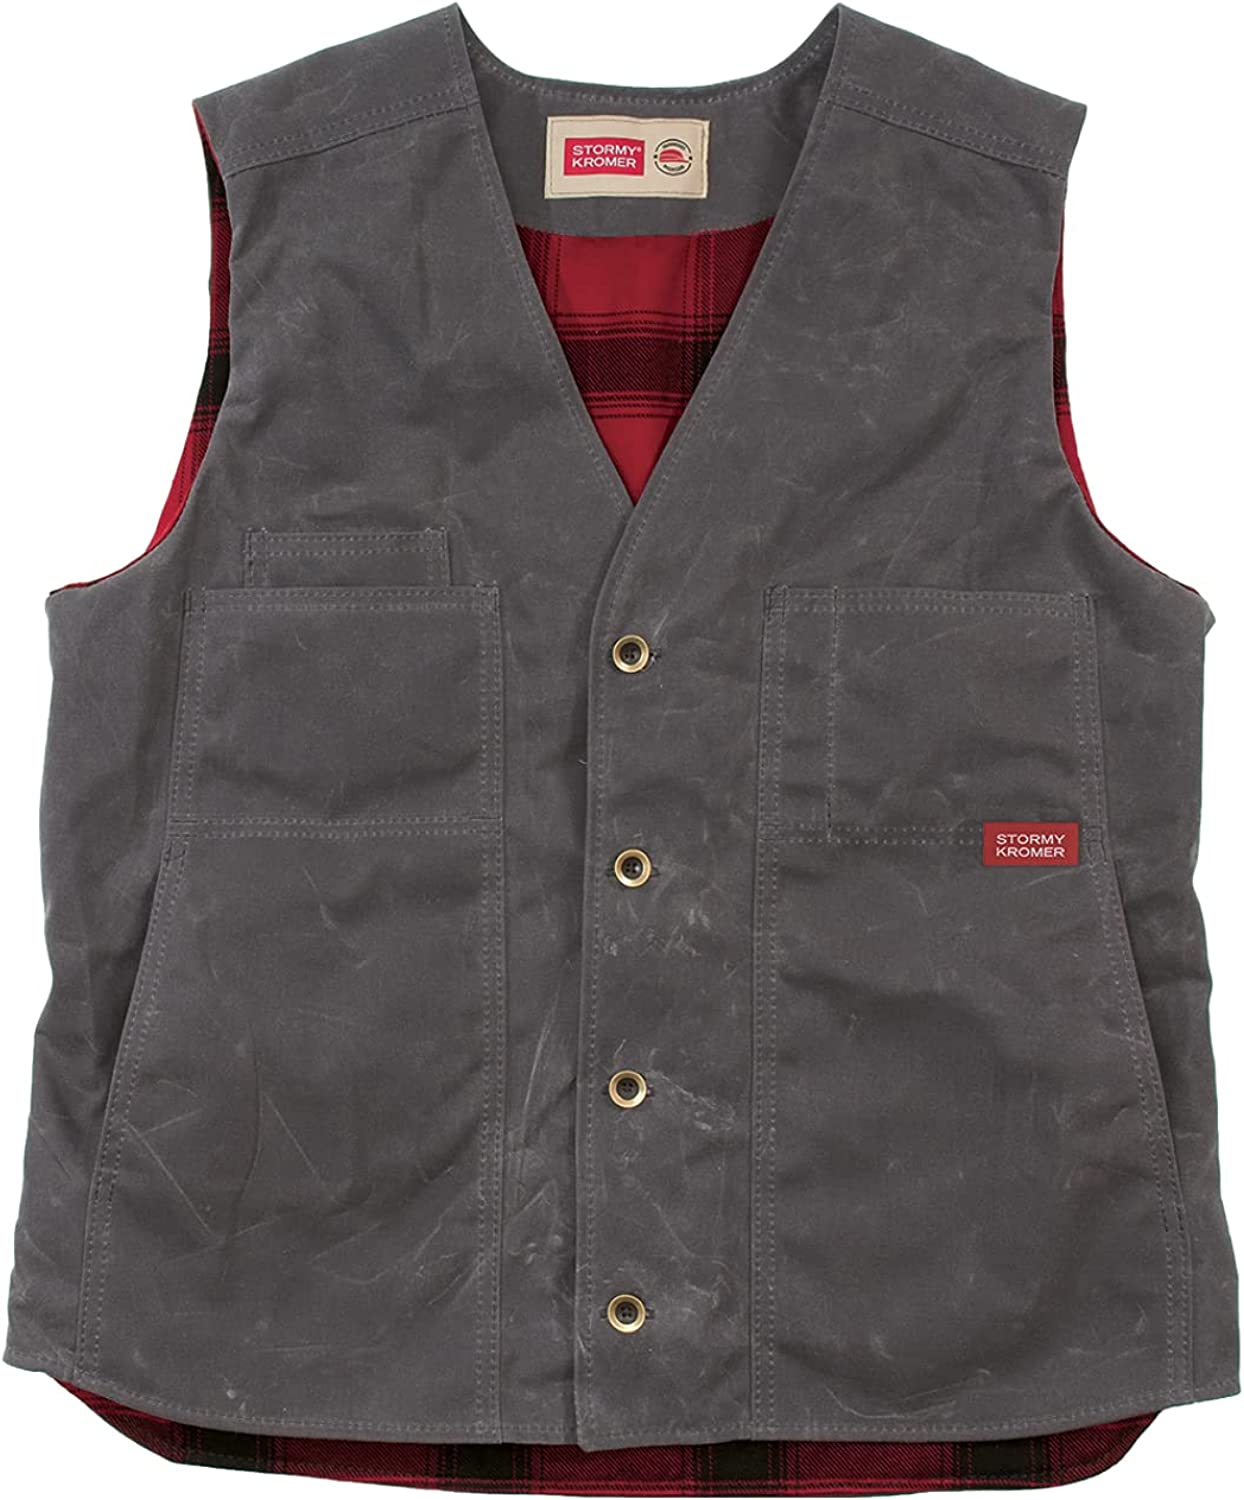 Stormy Kromer Waxed Button Vest With Lining - Cold Weather Men's Wool Vest